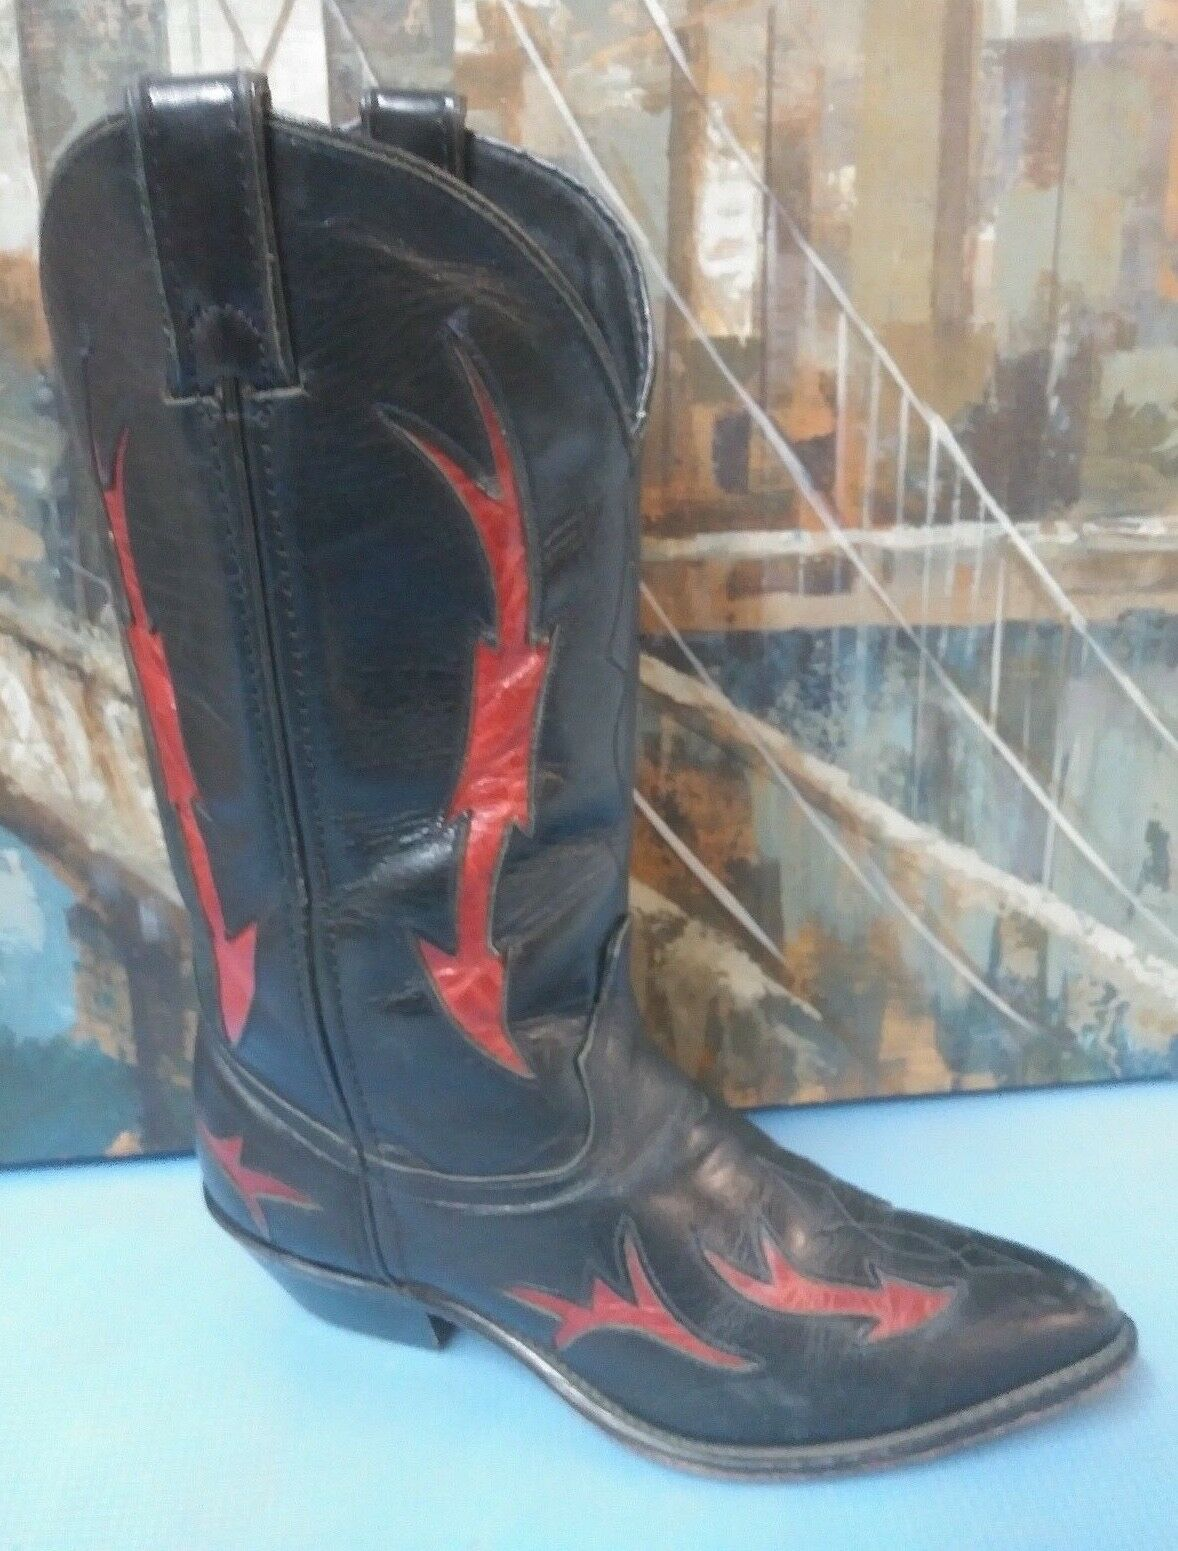 Damenschuhe CODE WEST BLACK ROT LEATHER CUT OUT INLAY COWBOY WESTERN BOOTS 7 M